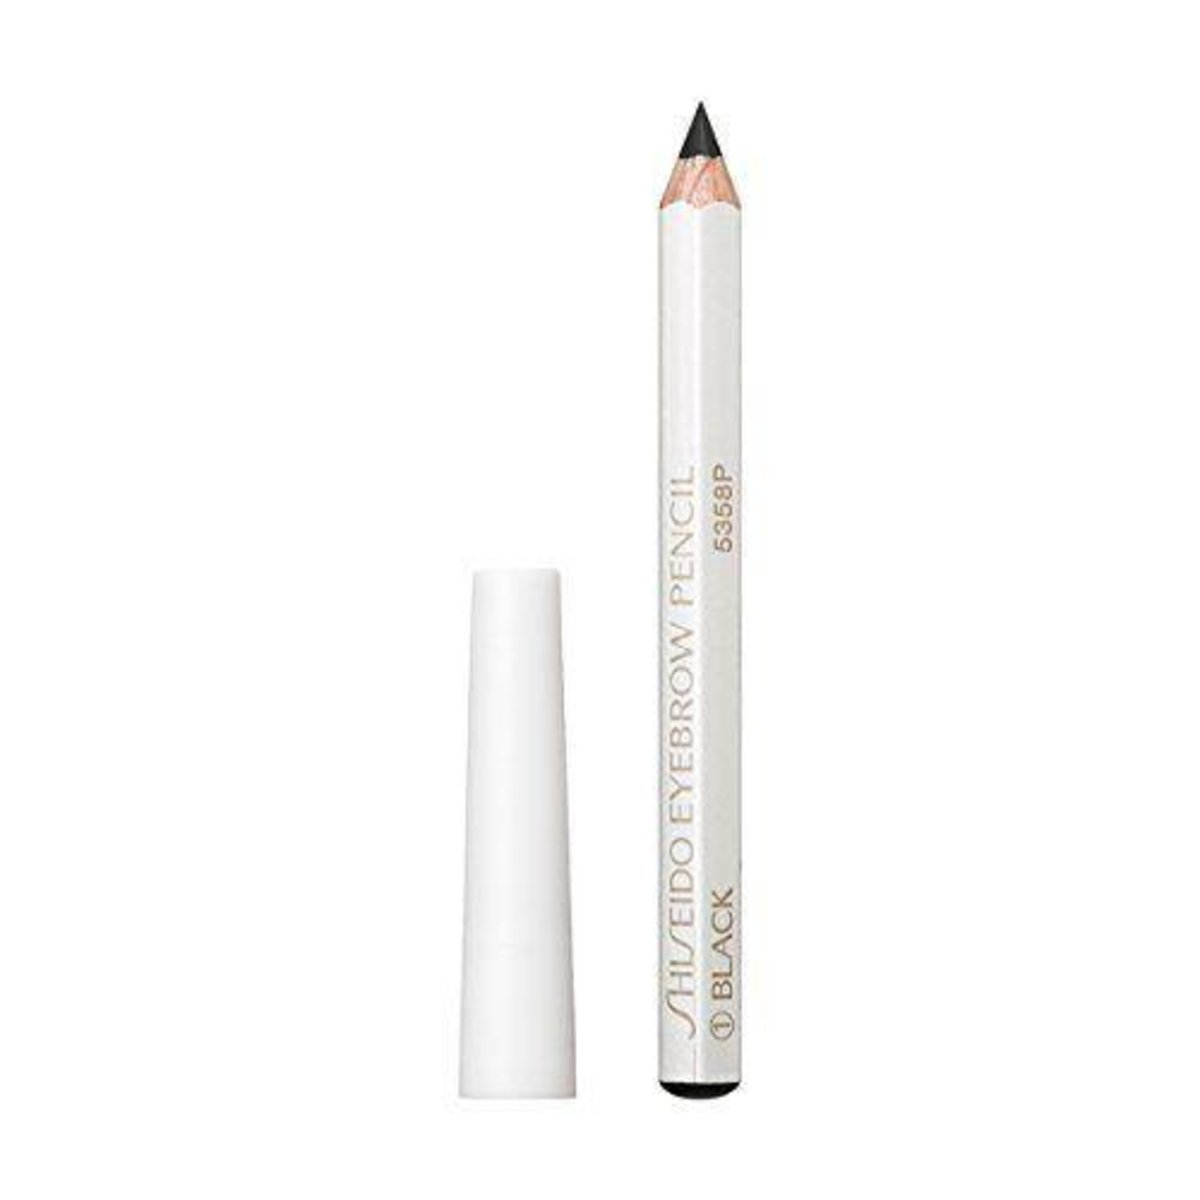 Eyebrow Pencil (Black)